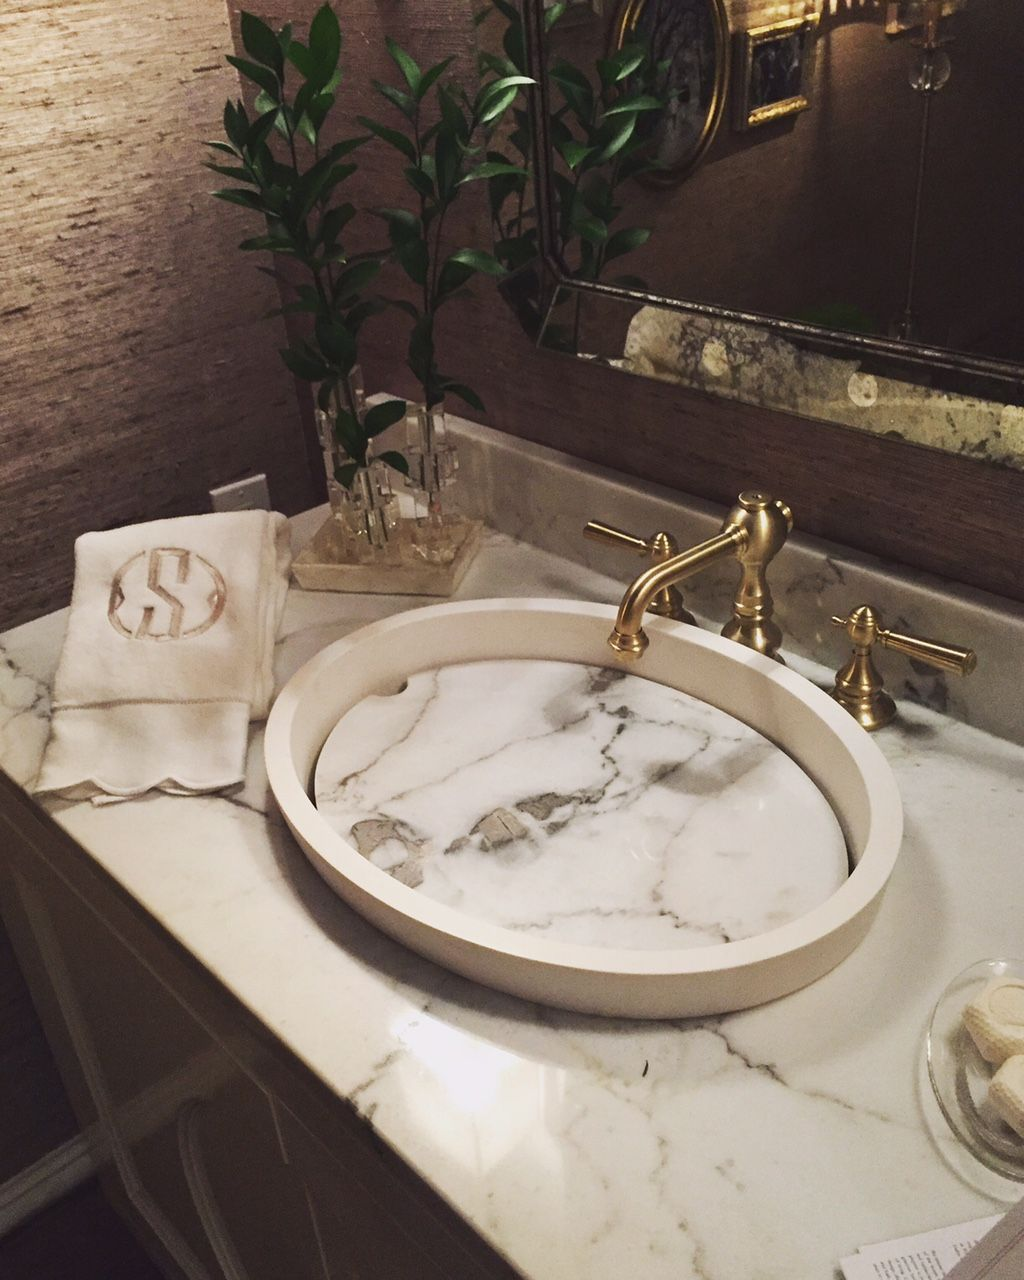 Award Winning MTI Continuum Sink Designed By Matthew Quinn